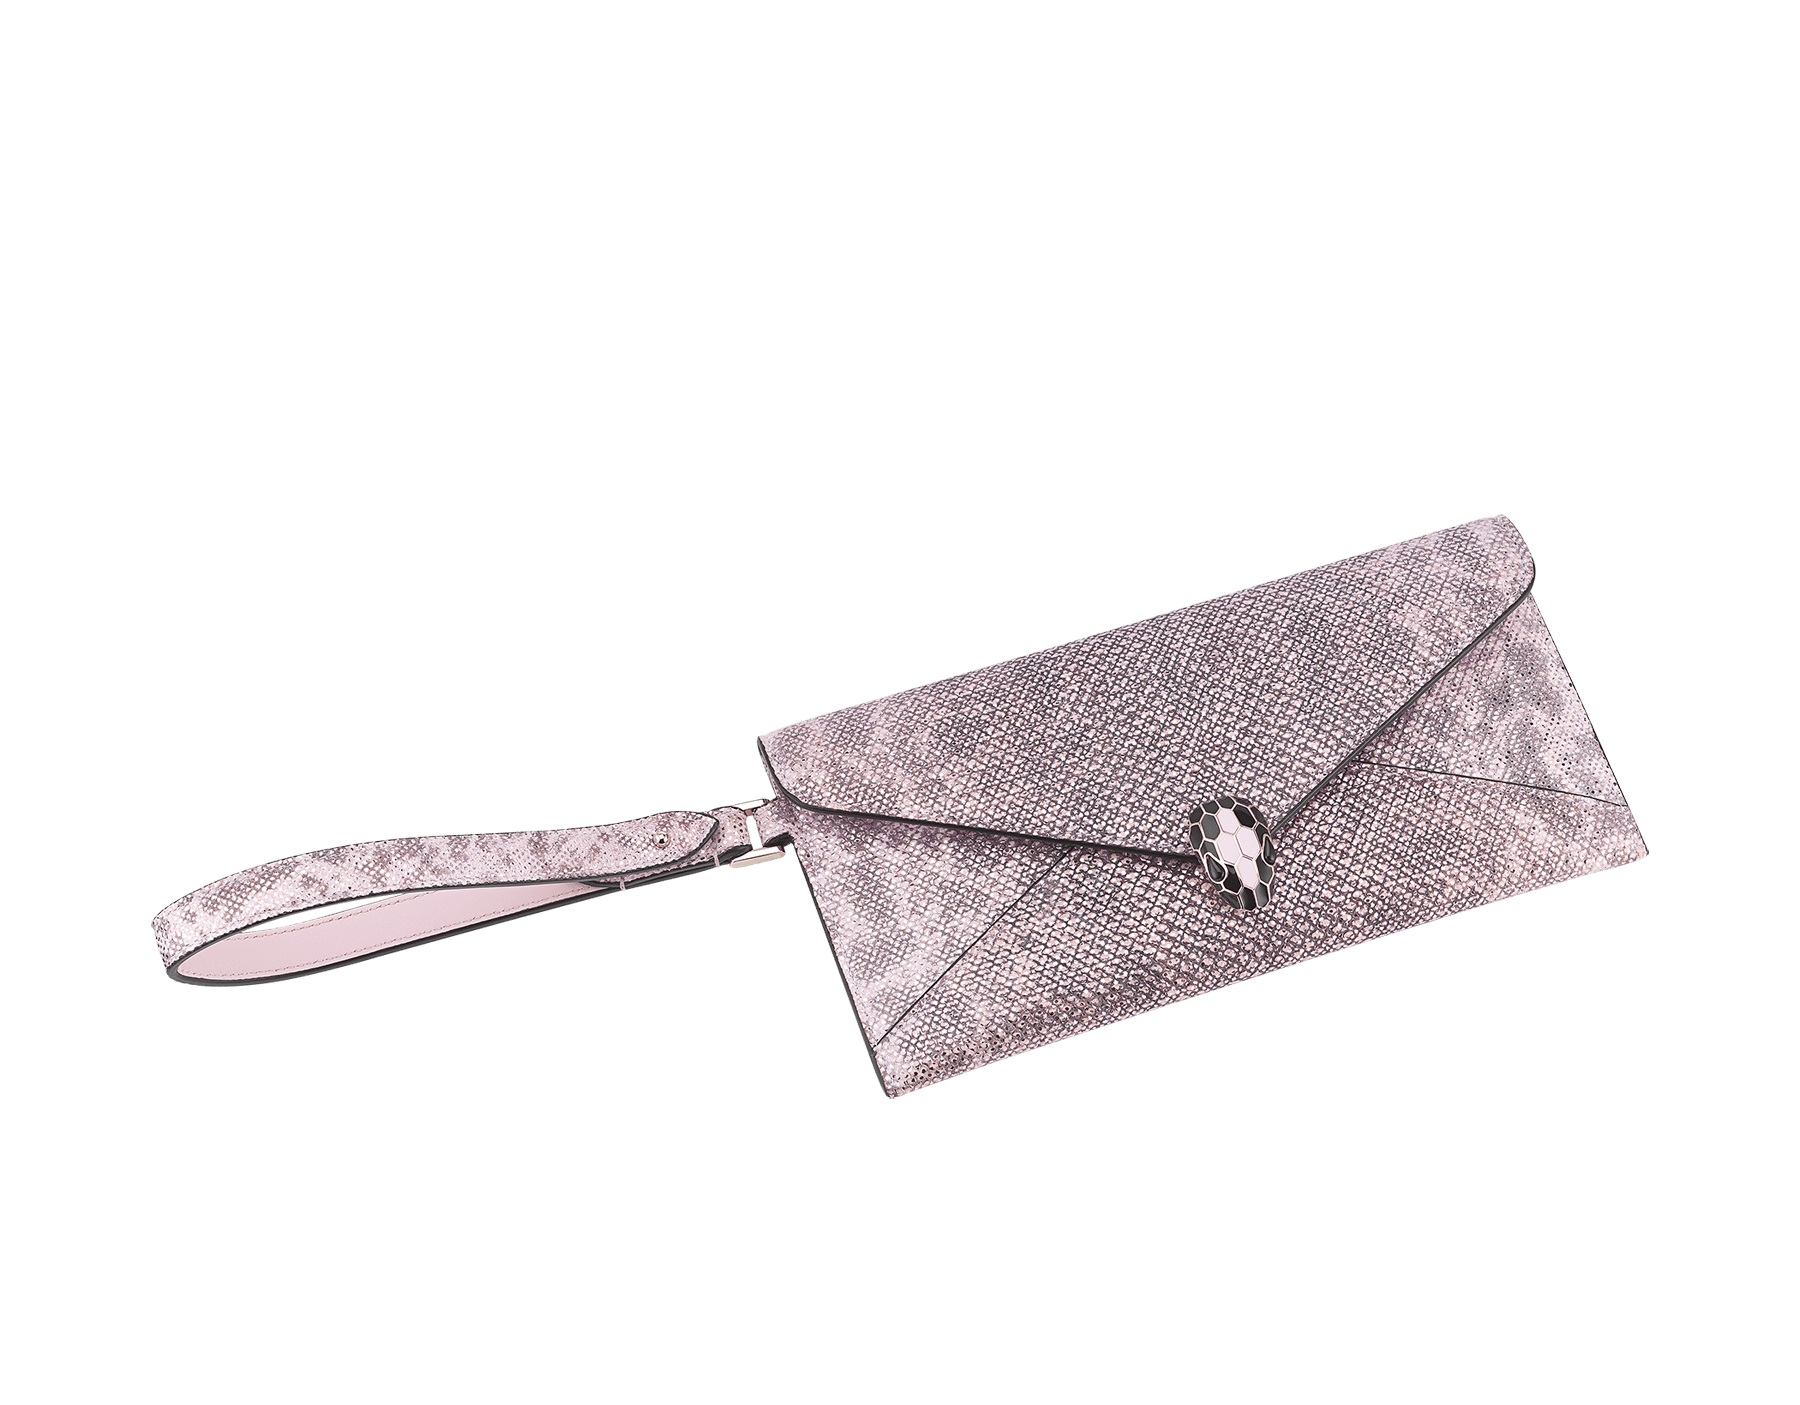 Serpenti Forever envelope case in rosa di francia metallic karung skin and rosa di francia calf leather. Iconic snakehead charm in black and rosa di francia enamel, with black onyx eyes. 289083 image 1